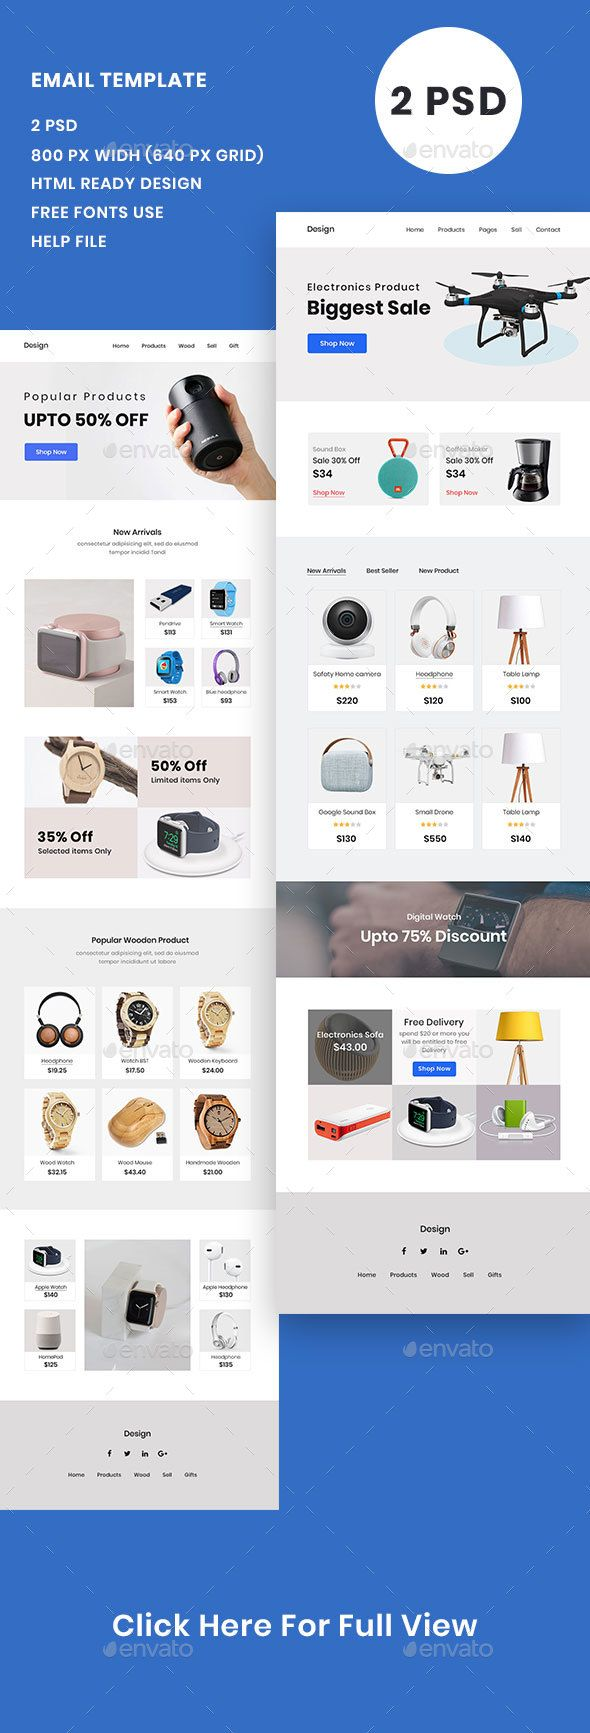 E Commerce Product Email Template Psd E Newsletter Templates